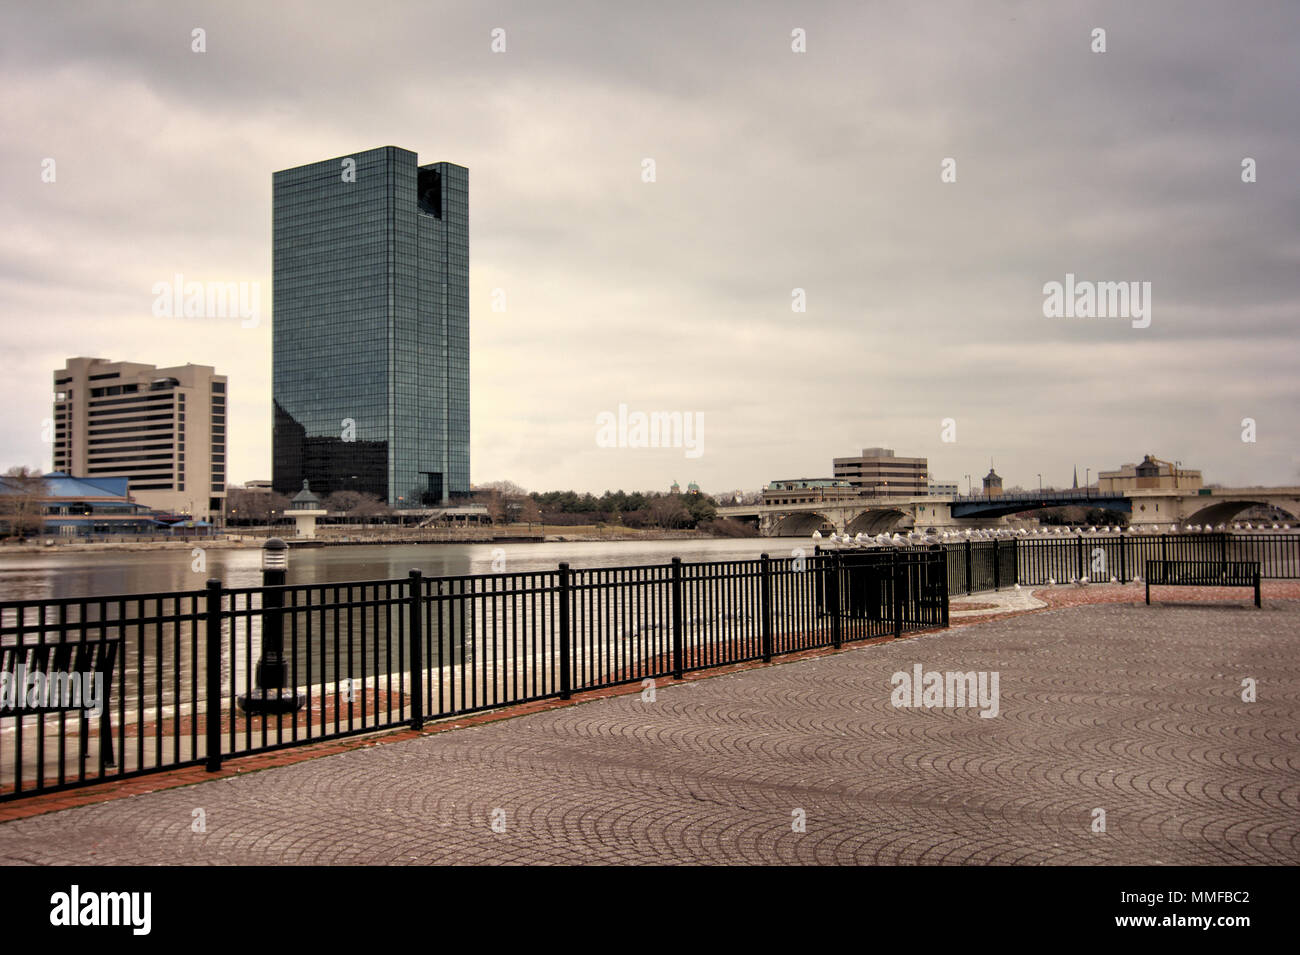 A panoramic view of downtown Toledo Ohio's skyline from across the Maumee River at a popular restaurant area with a paver brick boardwalk. Stock Photo